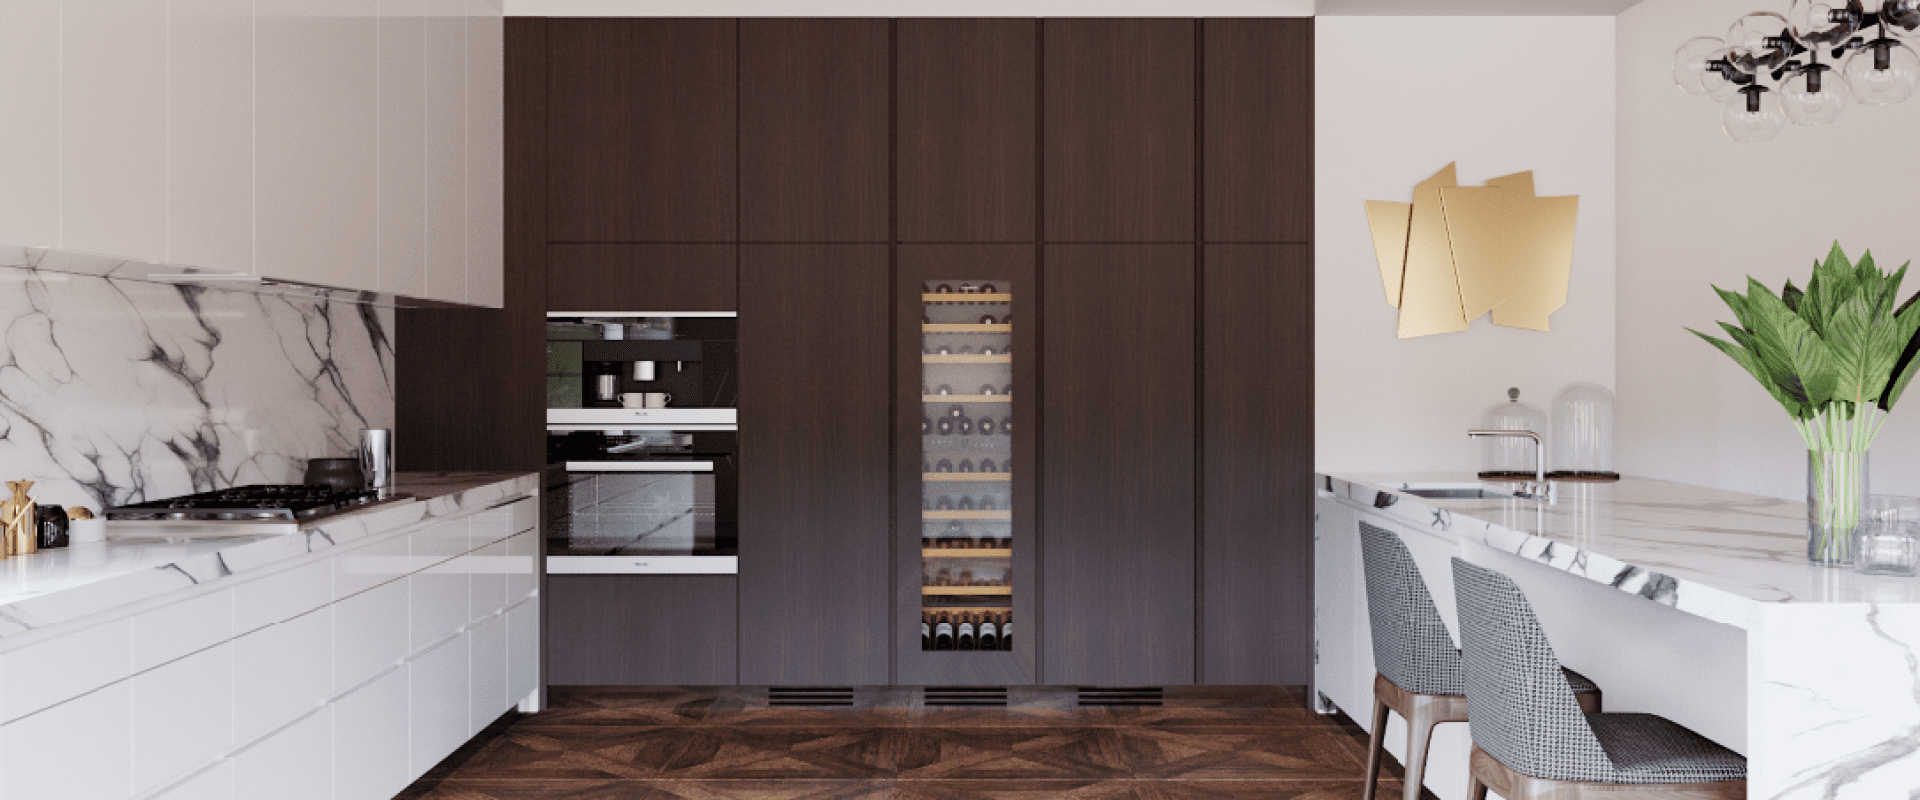 Hottest Kitchen Trends for 2019